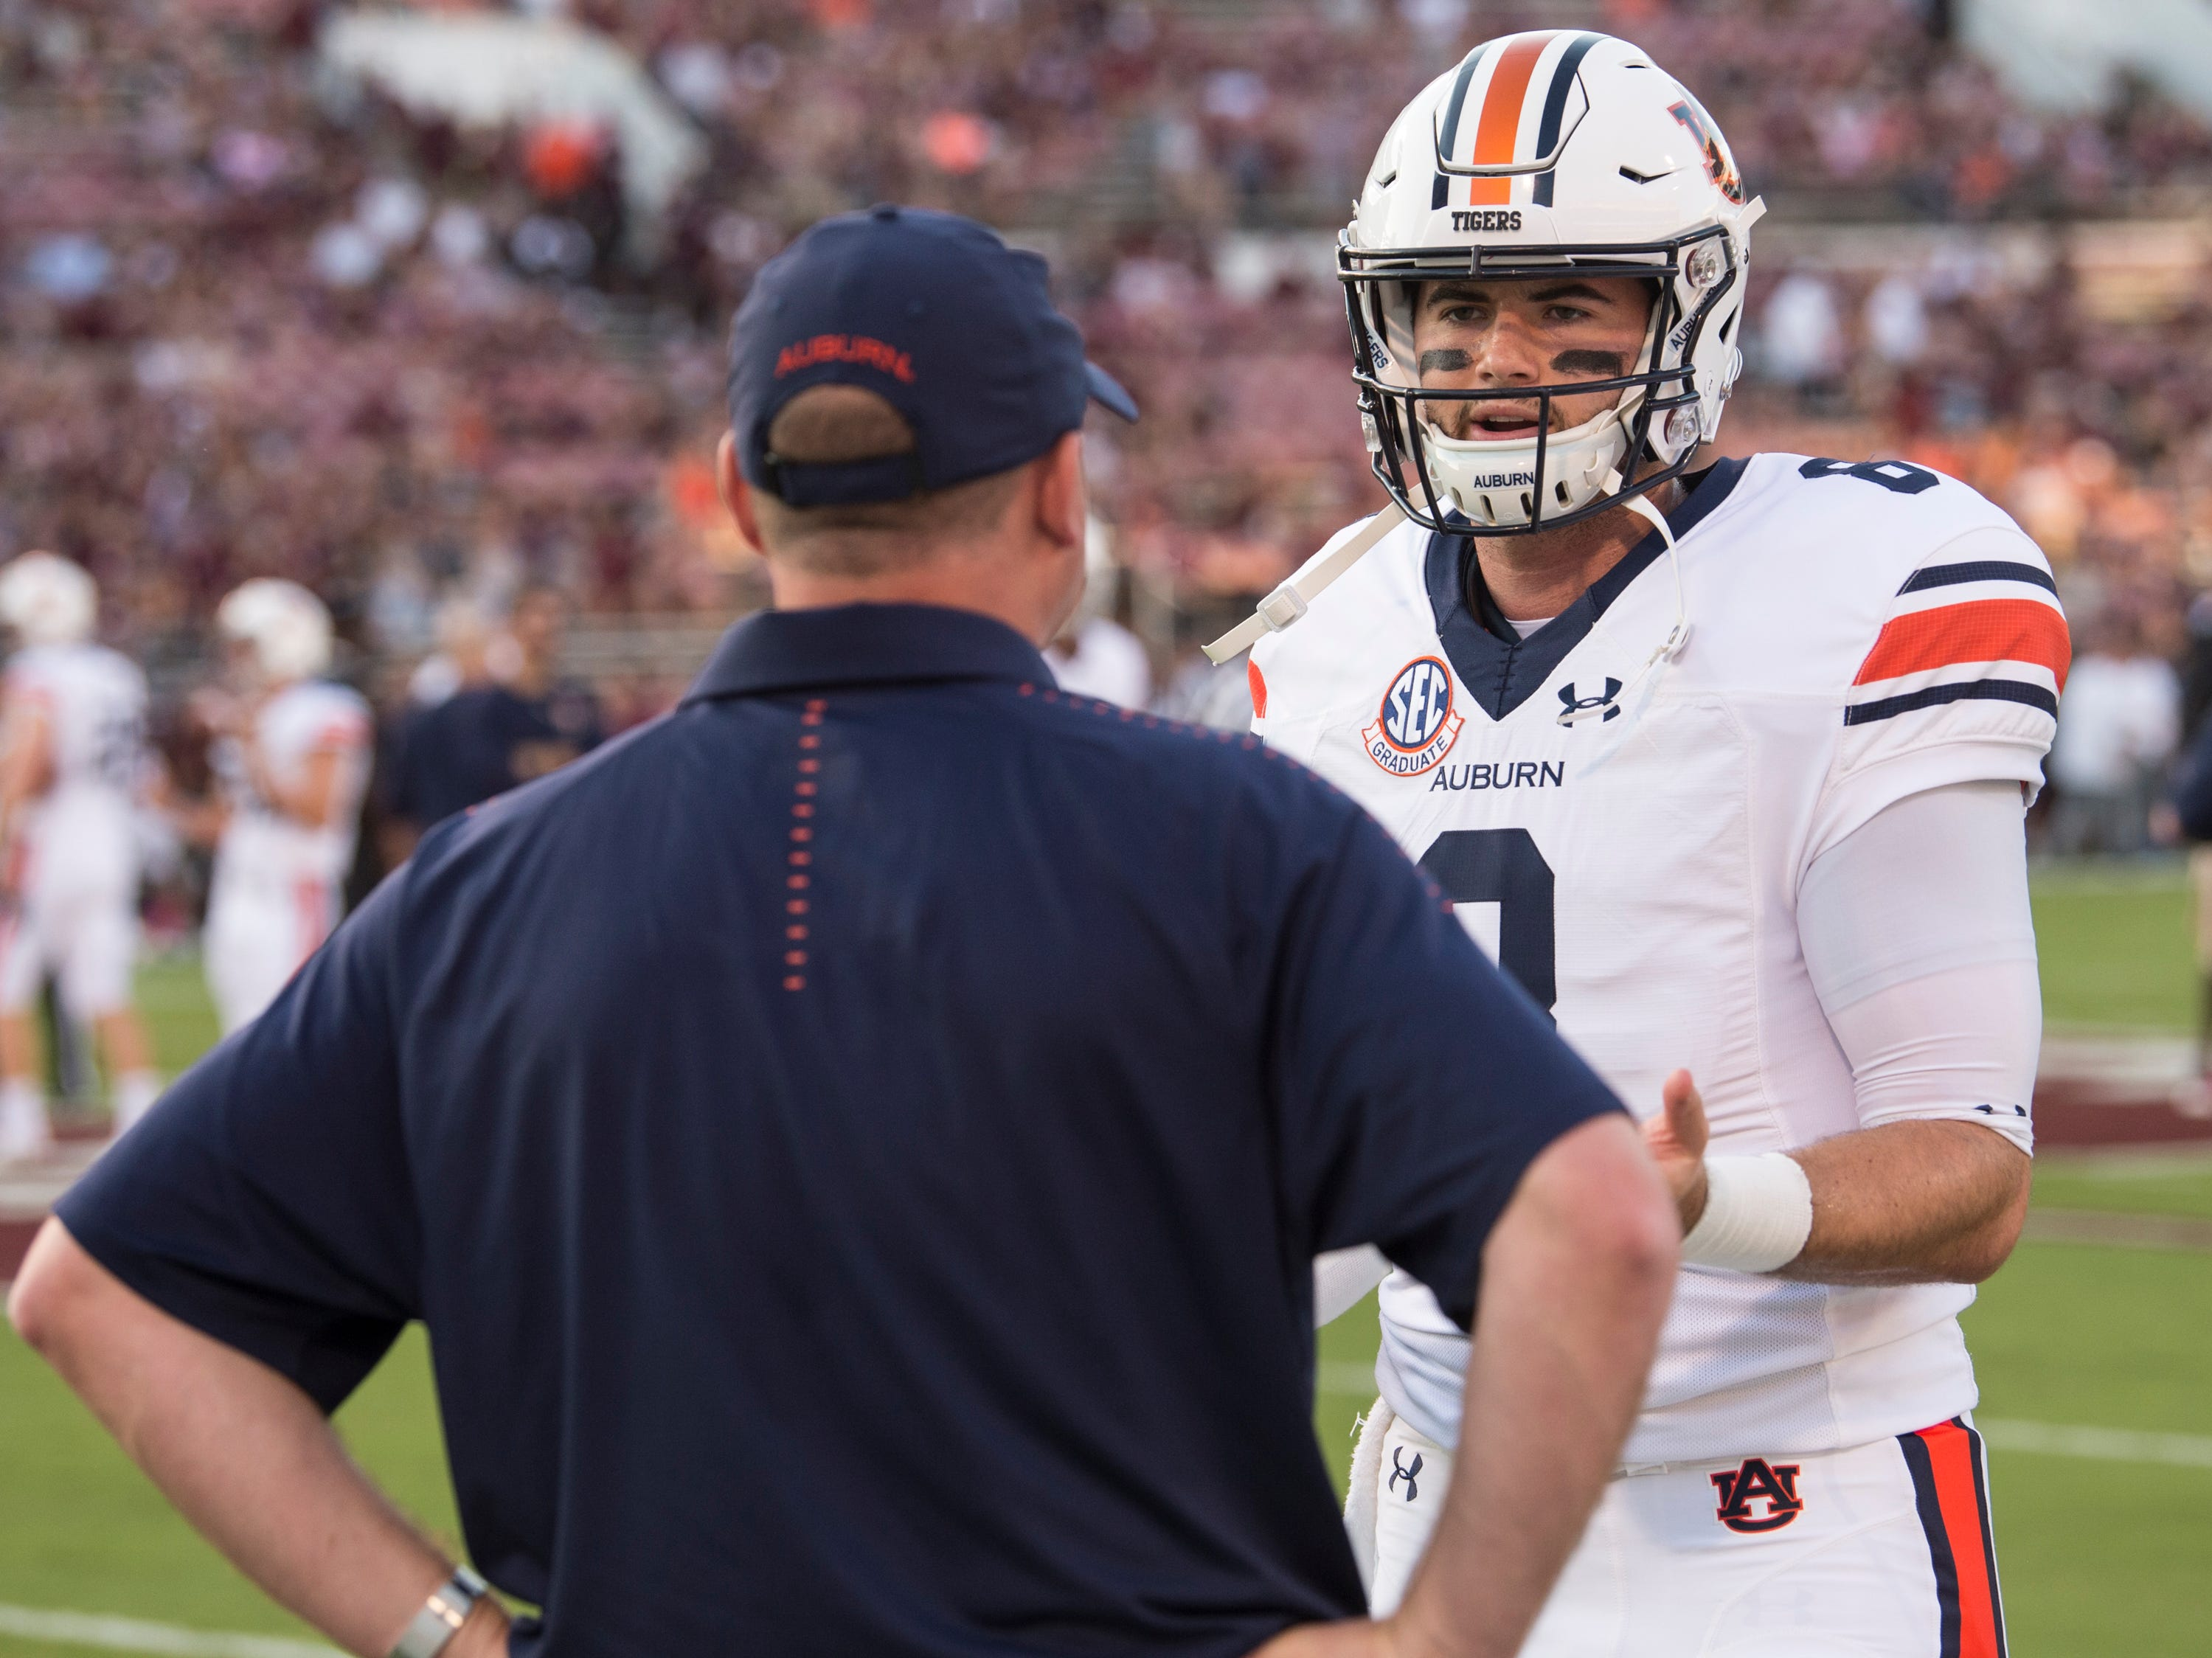 Auburn's Jarrett Stidham (8) talks with Auburn offensive coordinator Chip Lindsey during warm ups at Davis Wade Stadium in Starkville, Miss., on Saturday, Oct. 6, 2018.